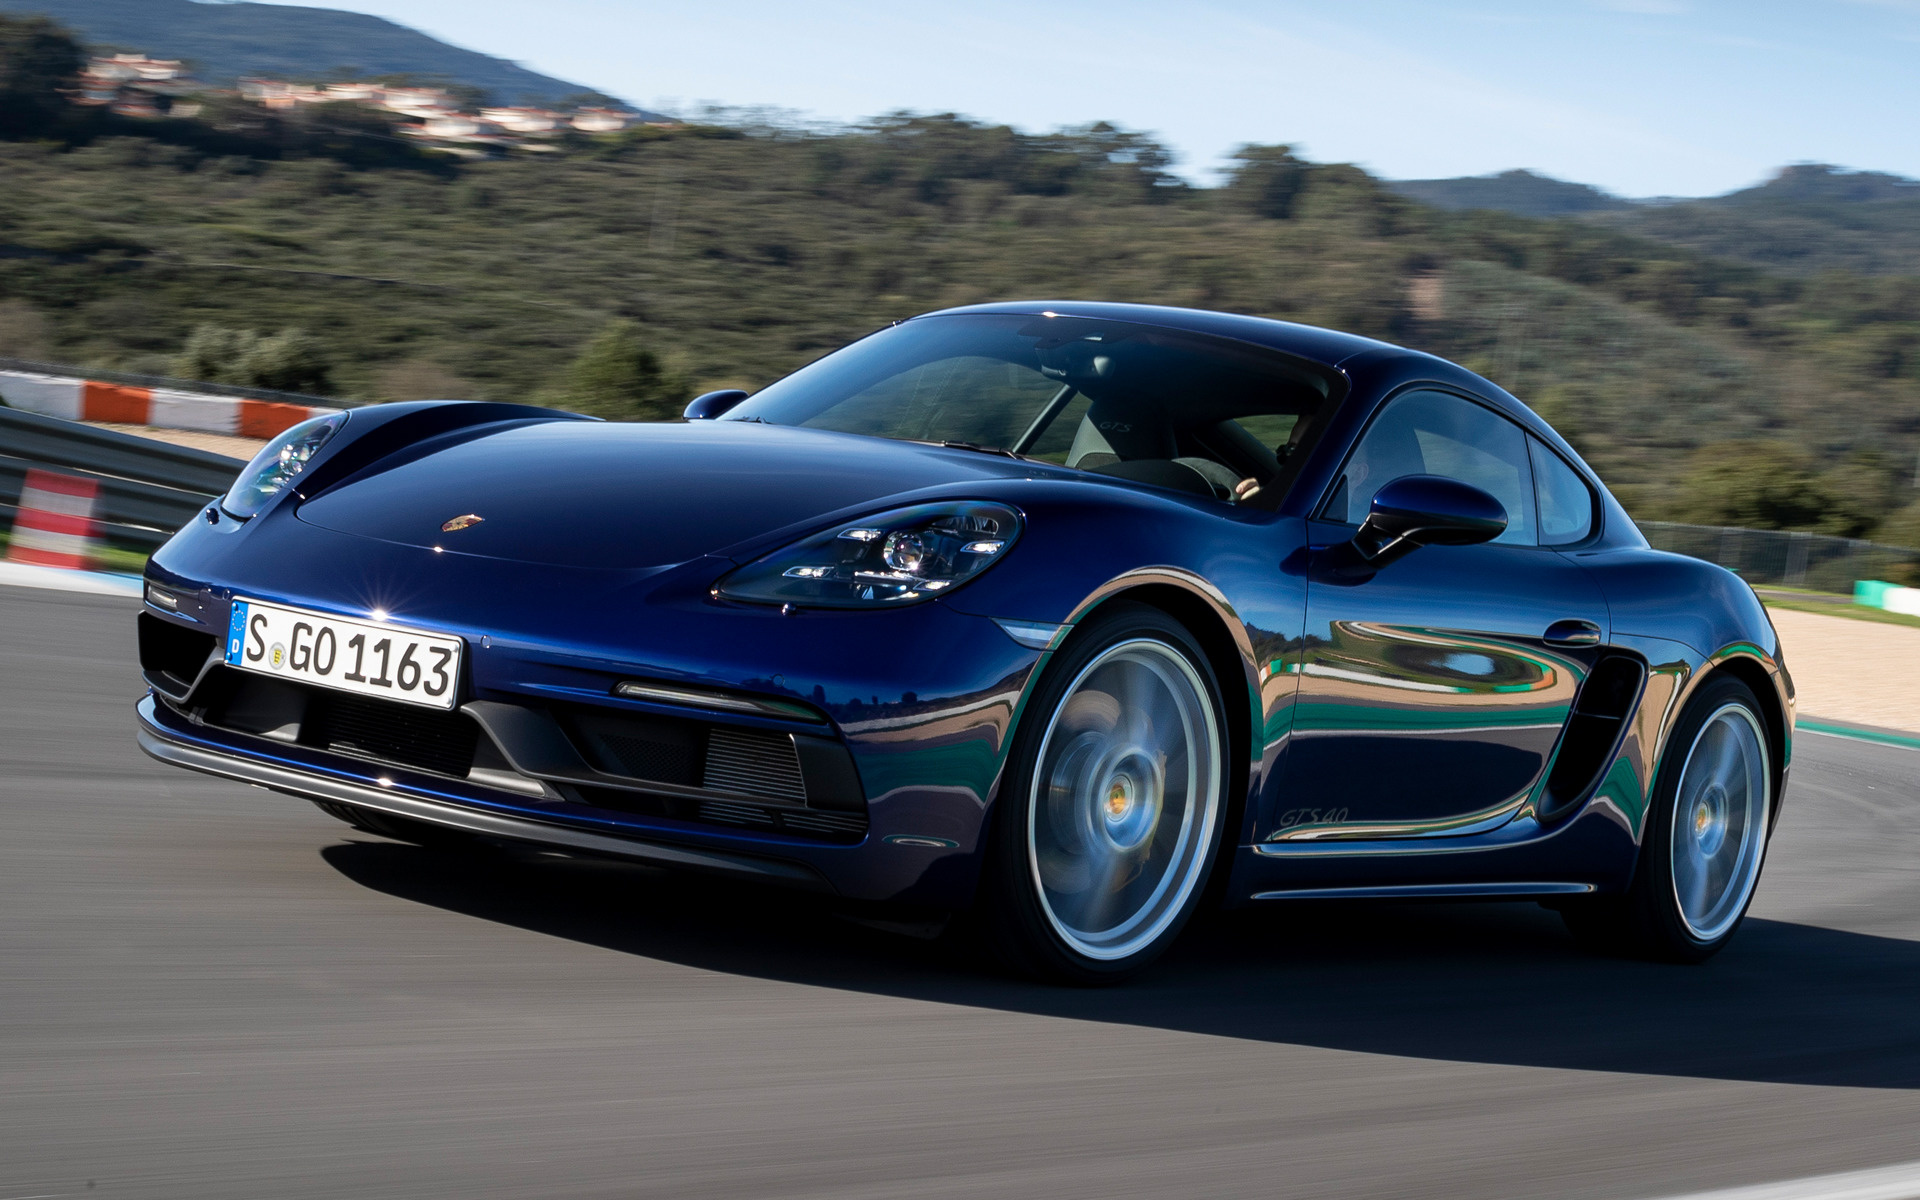 2020 Porsche 718 Cayman Gts 4 0 Wallpapers And Hd Images Car Pixel